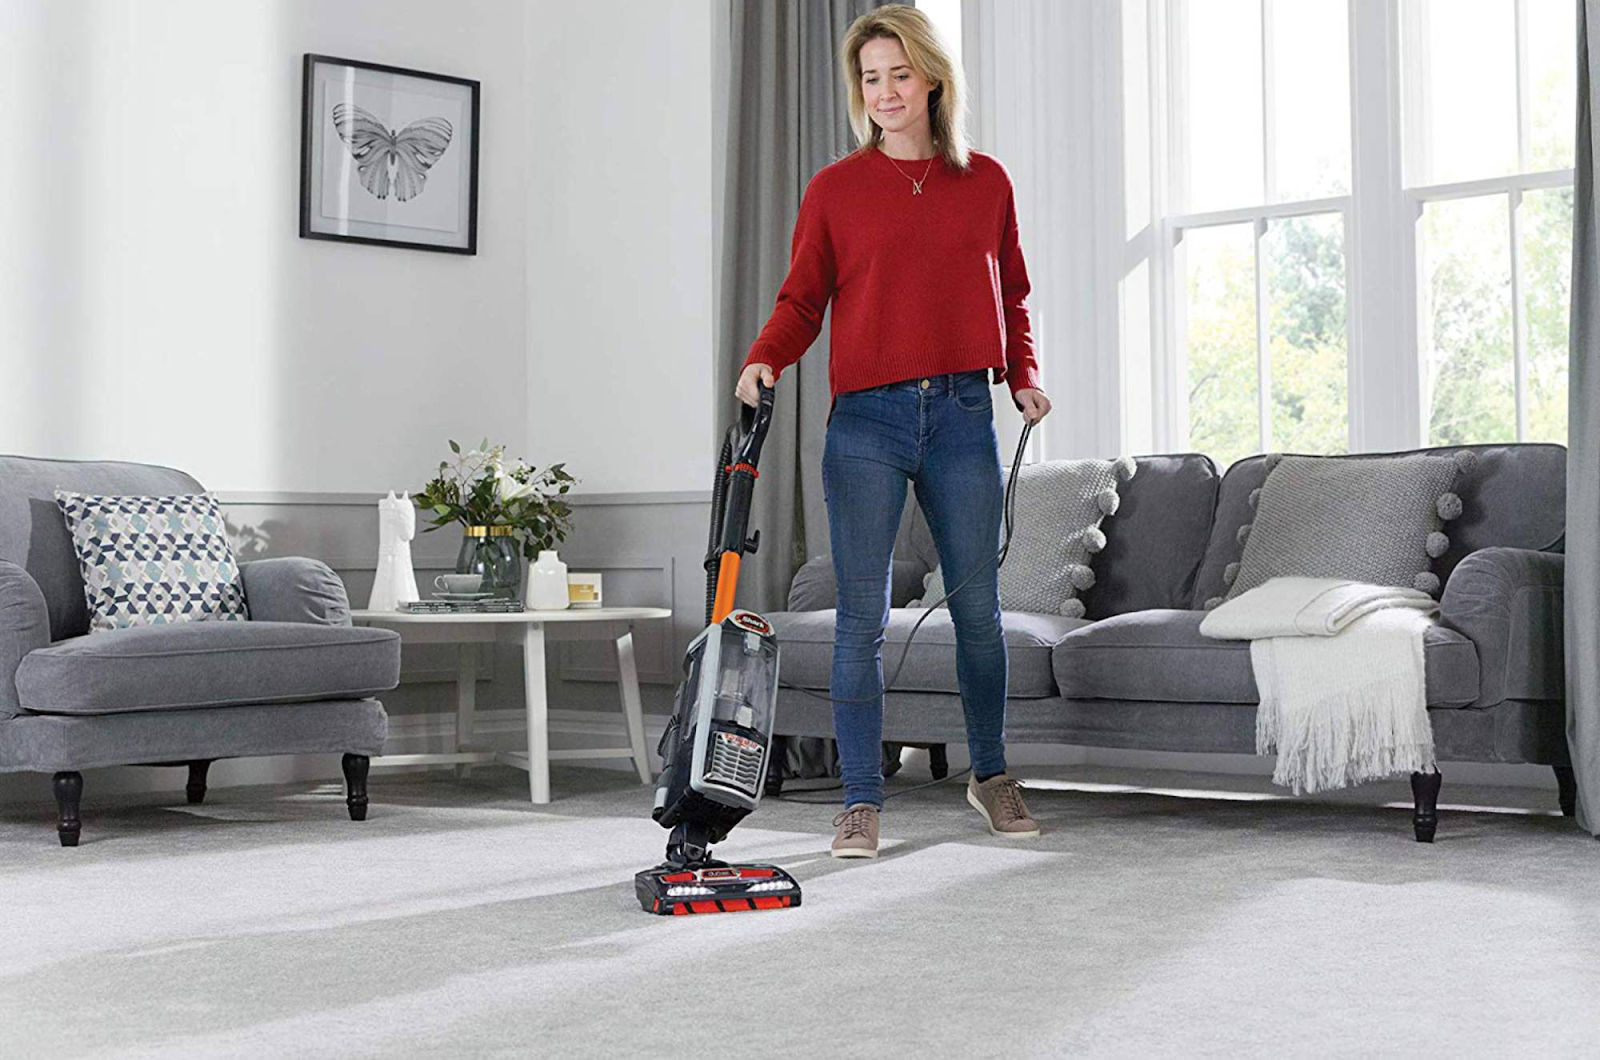 A vacuum cleaner helps you improve your psychological health and makes you feel more comfortable at home